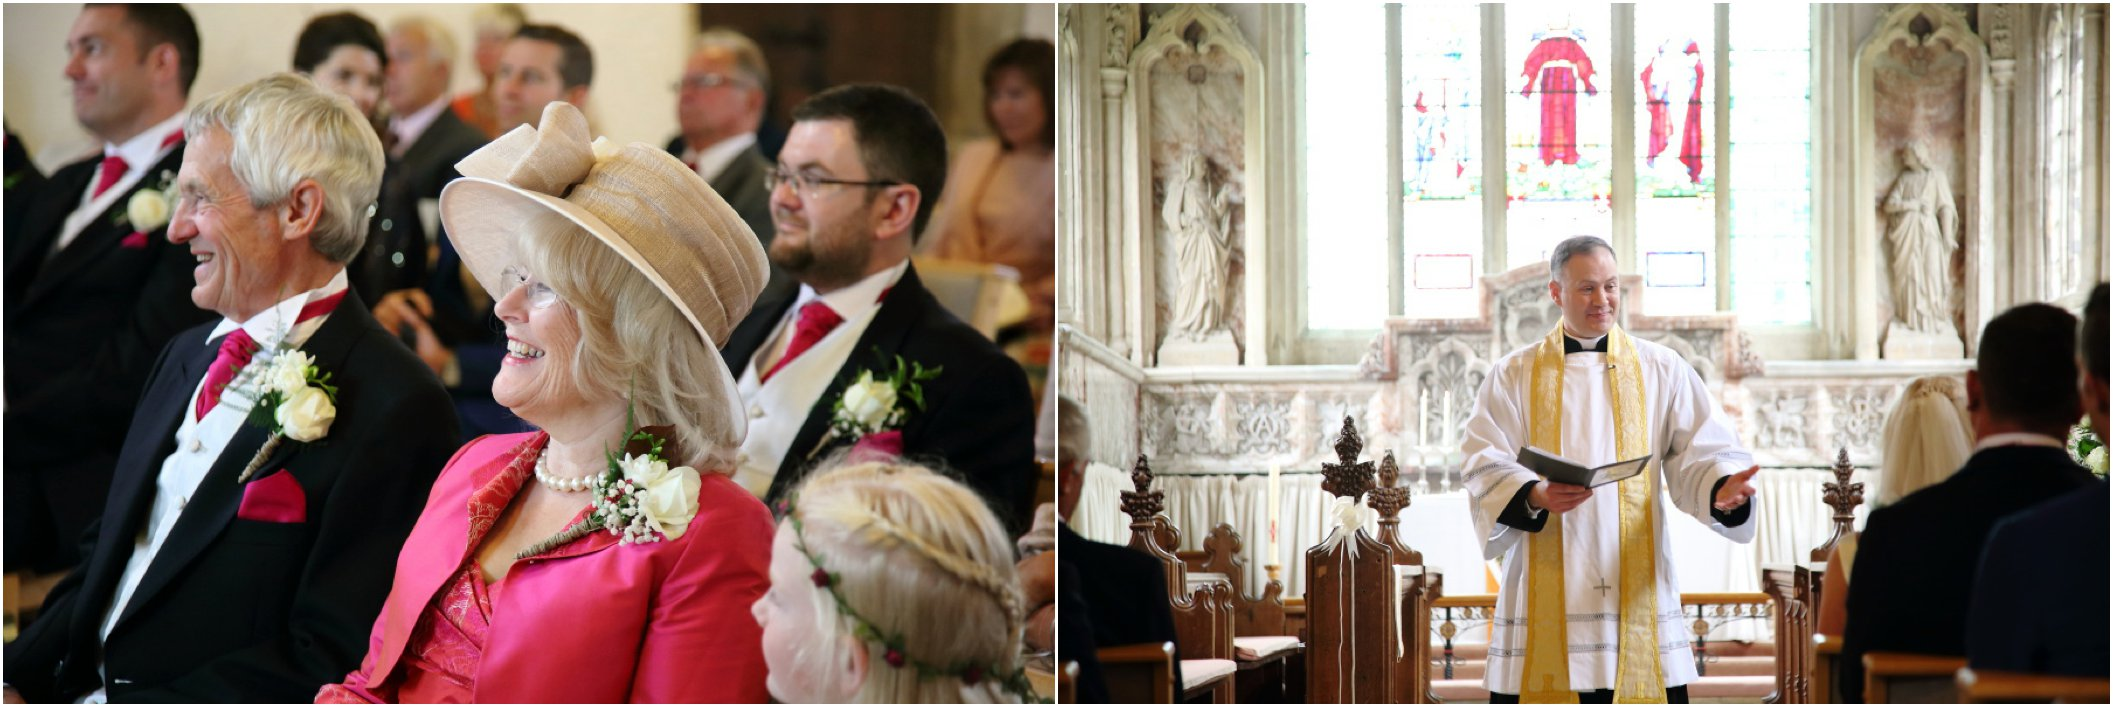 natural-wedding-photography-le-talbooth-essex_0014